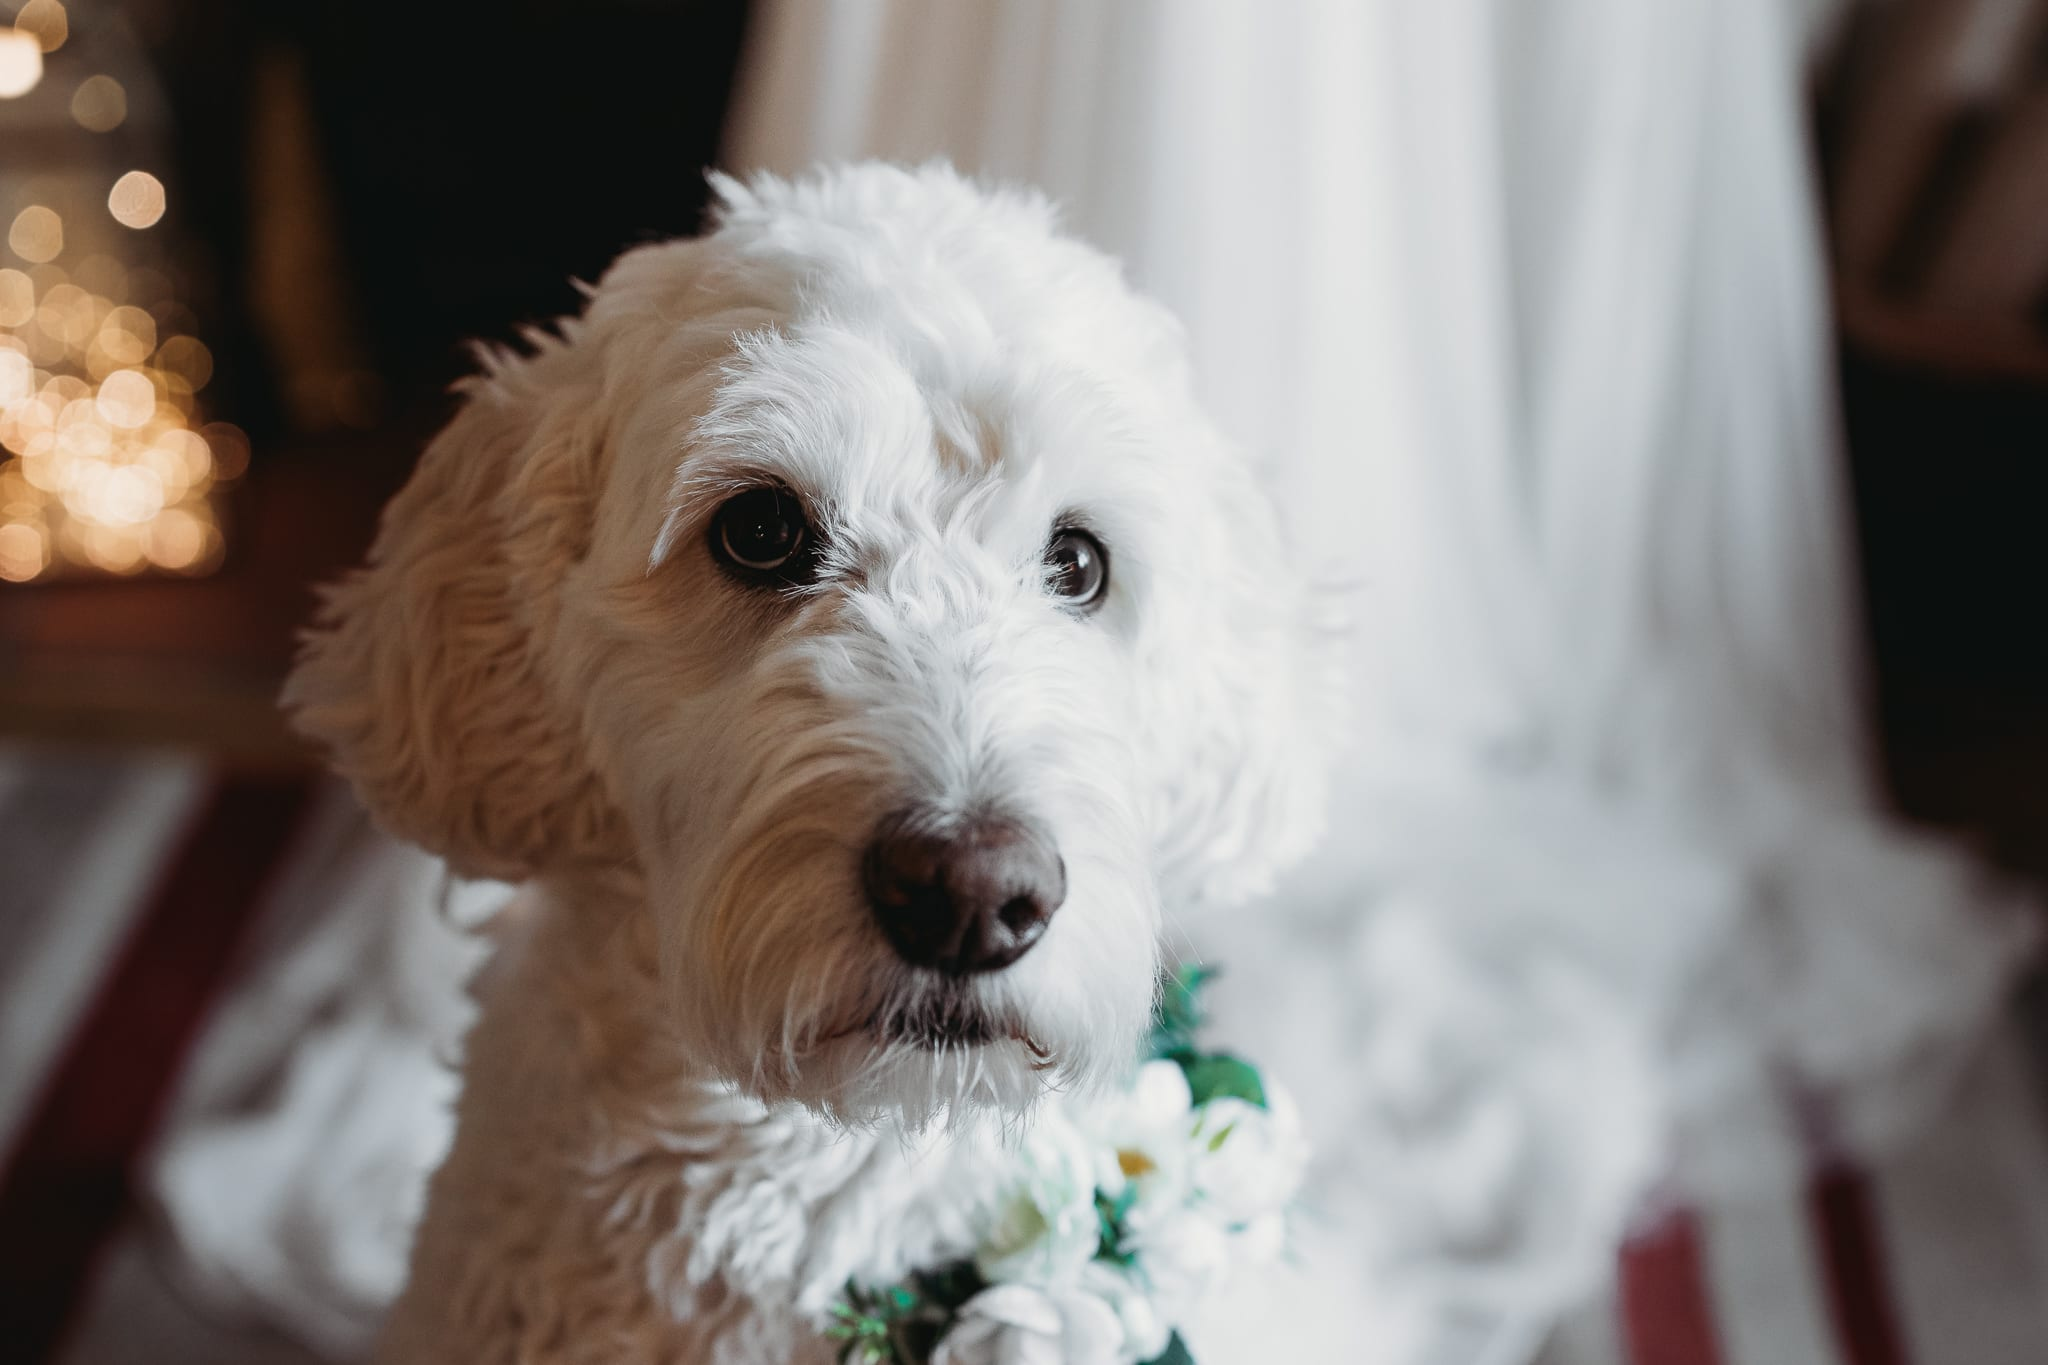 closeup of a white dog wearing a flower necklace